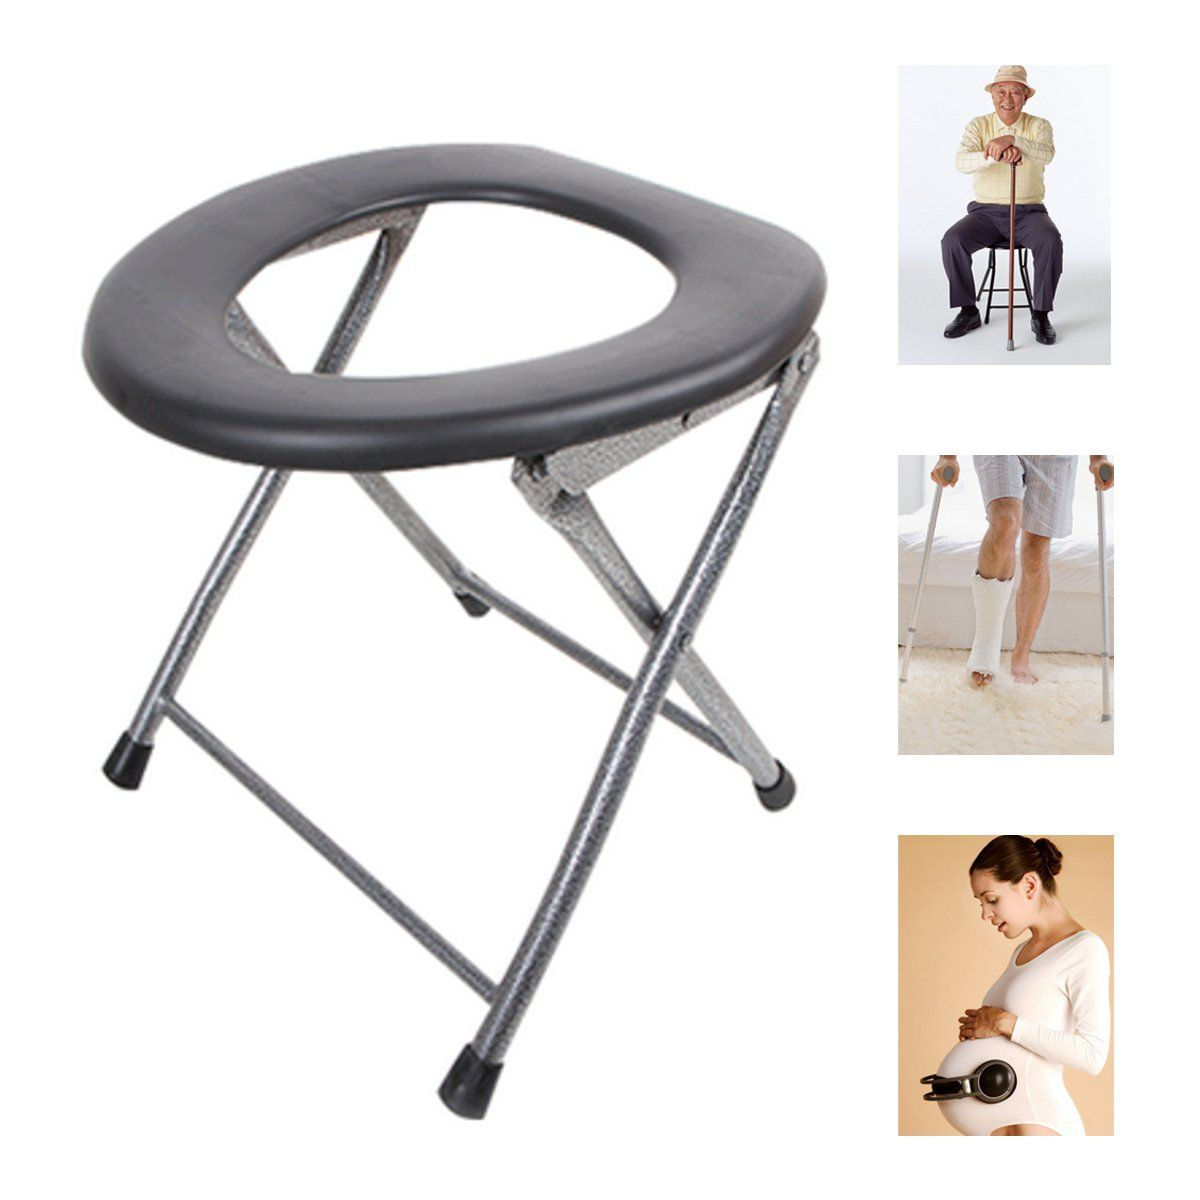 Best 105 Reference Of Folding Commode Chair Australia In 2020 Commode Chair Chair Portable Toilet Seat